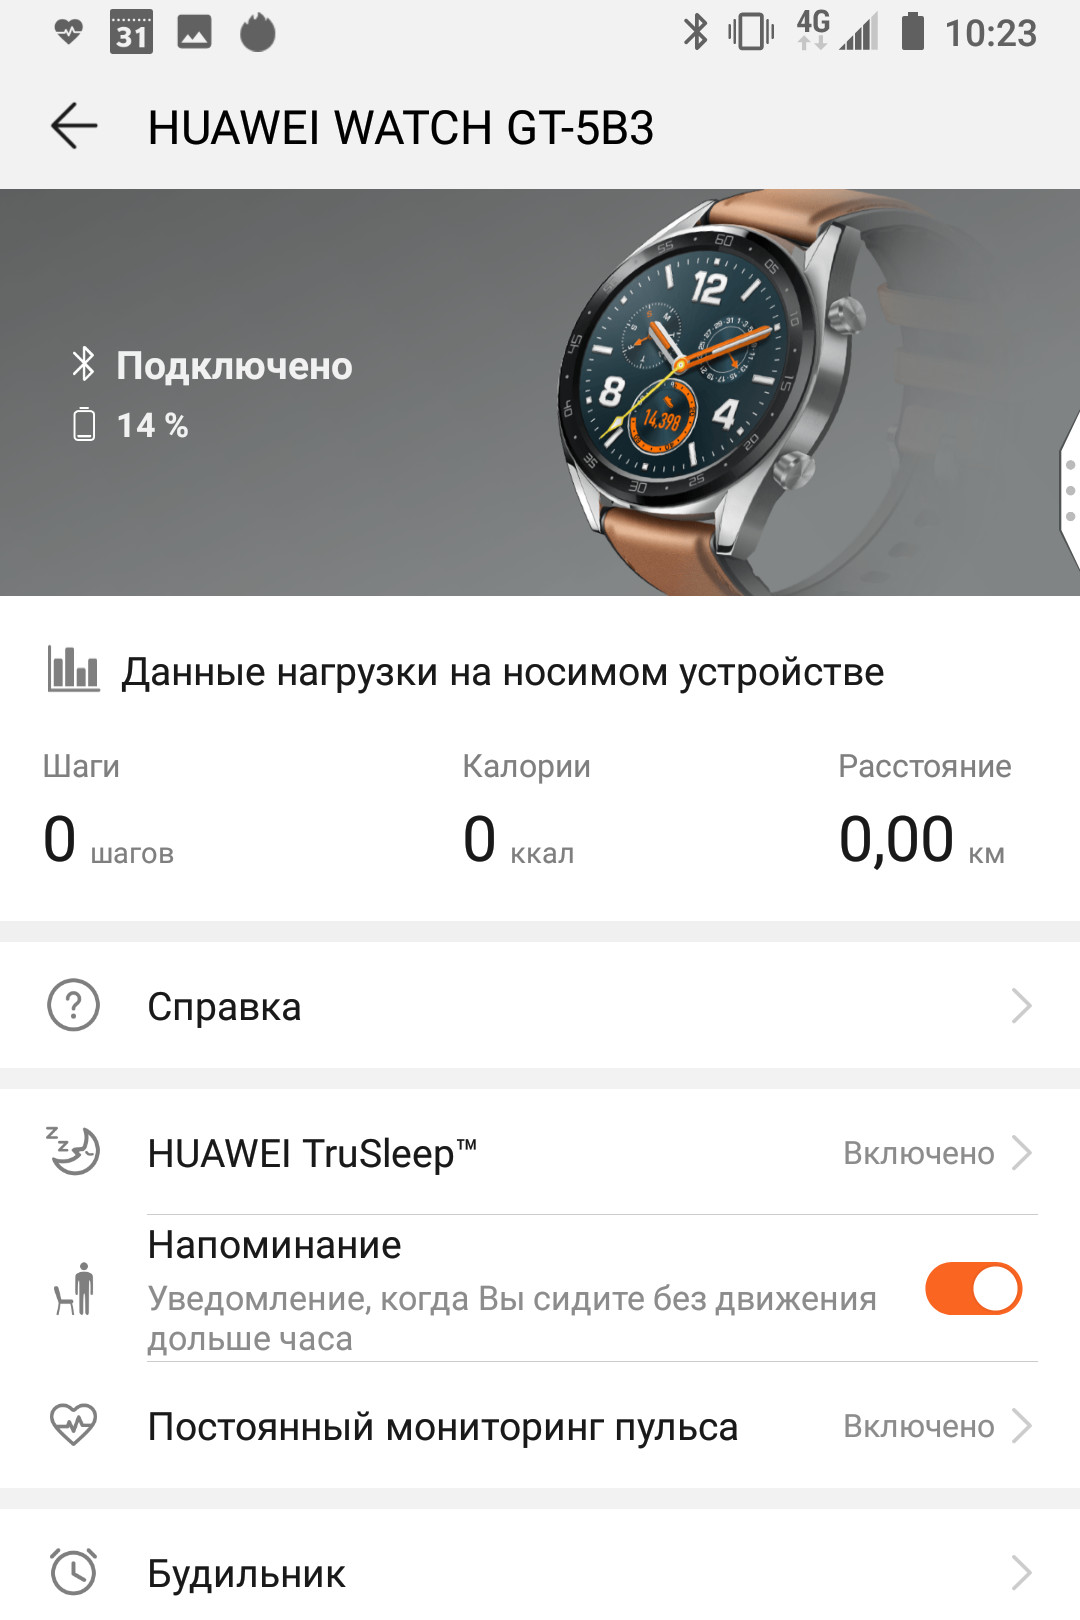 Обзор Band 3 Pro и Huawei Watch GT Huawei  - obzor_huawei_watch_gt_i_band_3_pro_chasy_protiv_brasleta_picture39_18